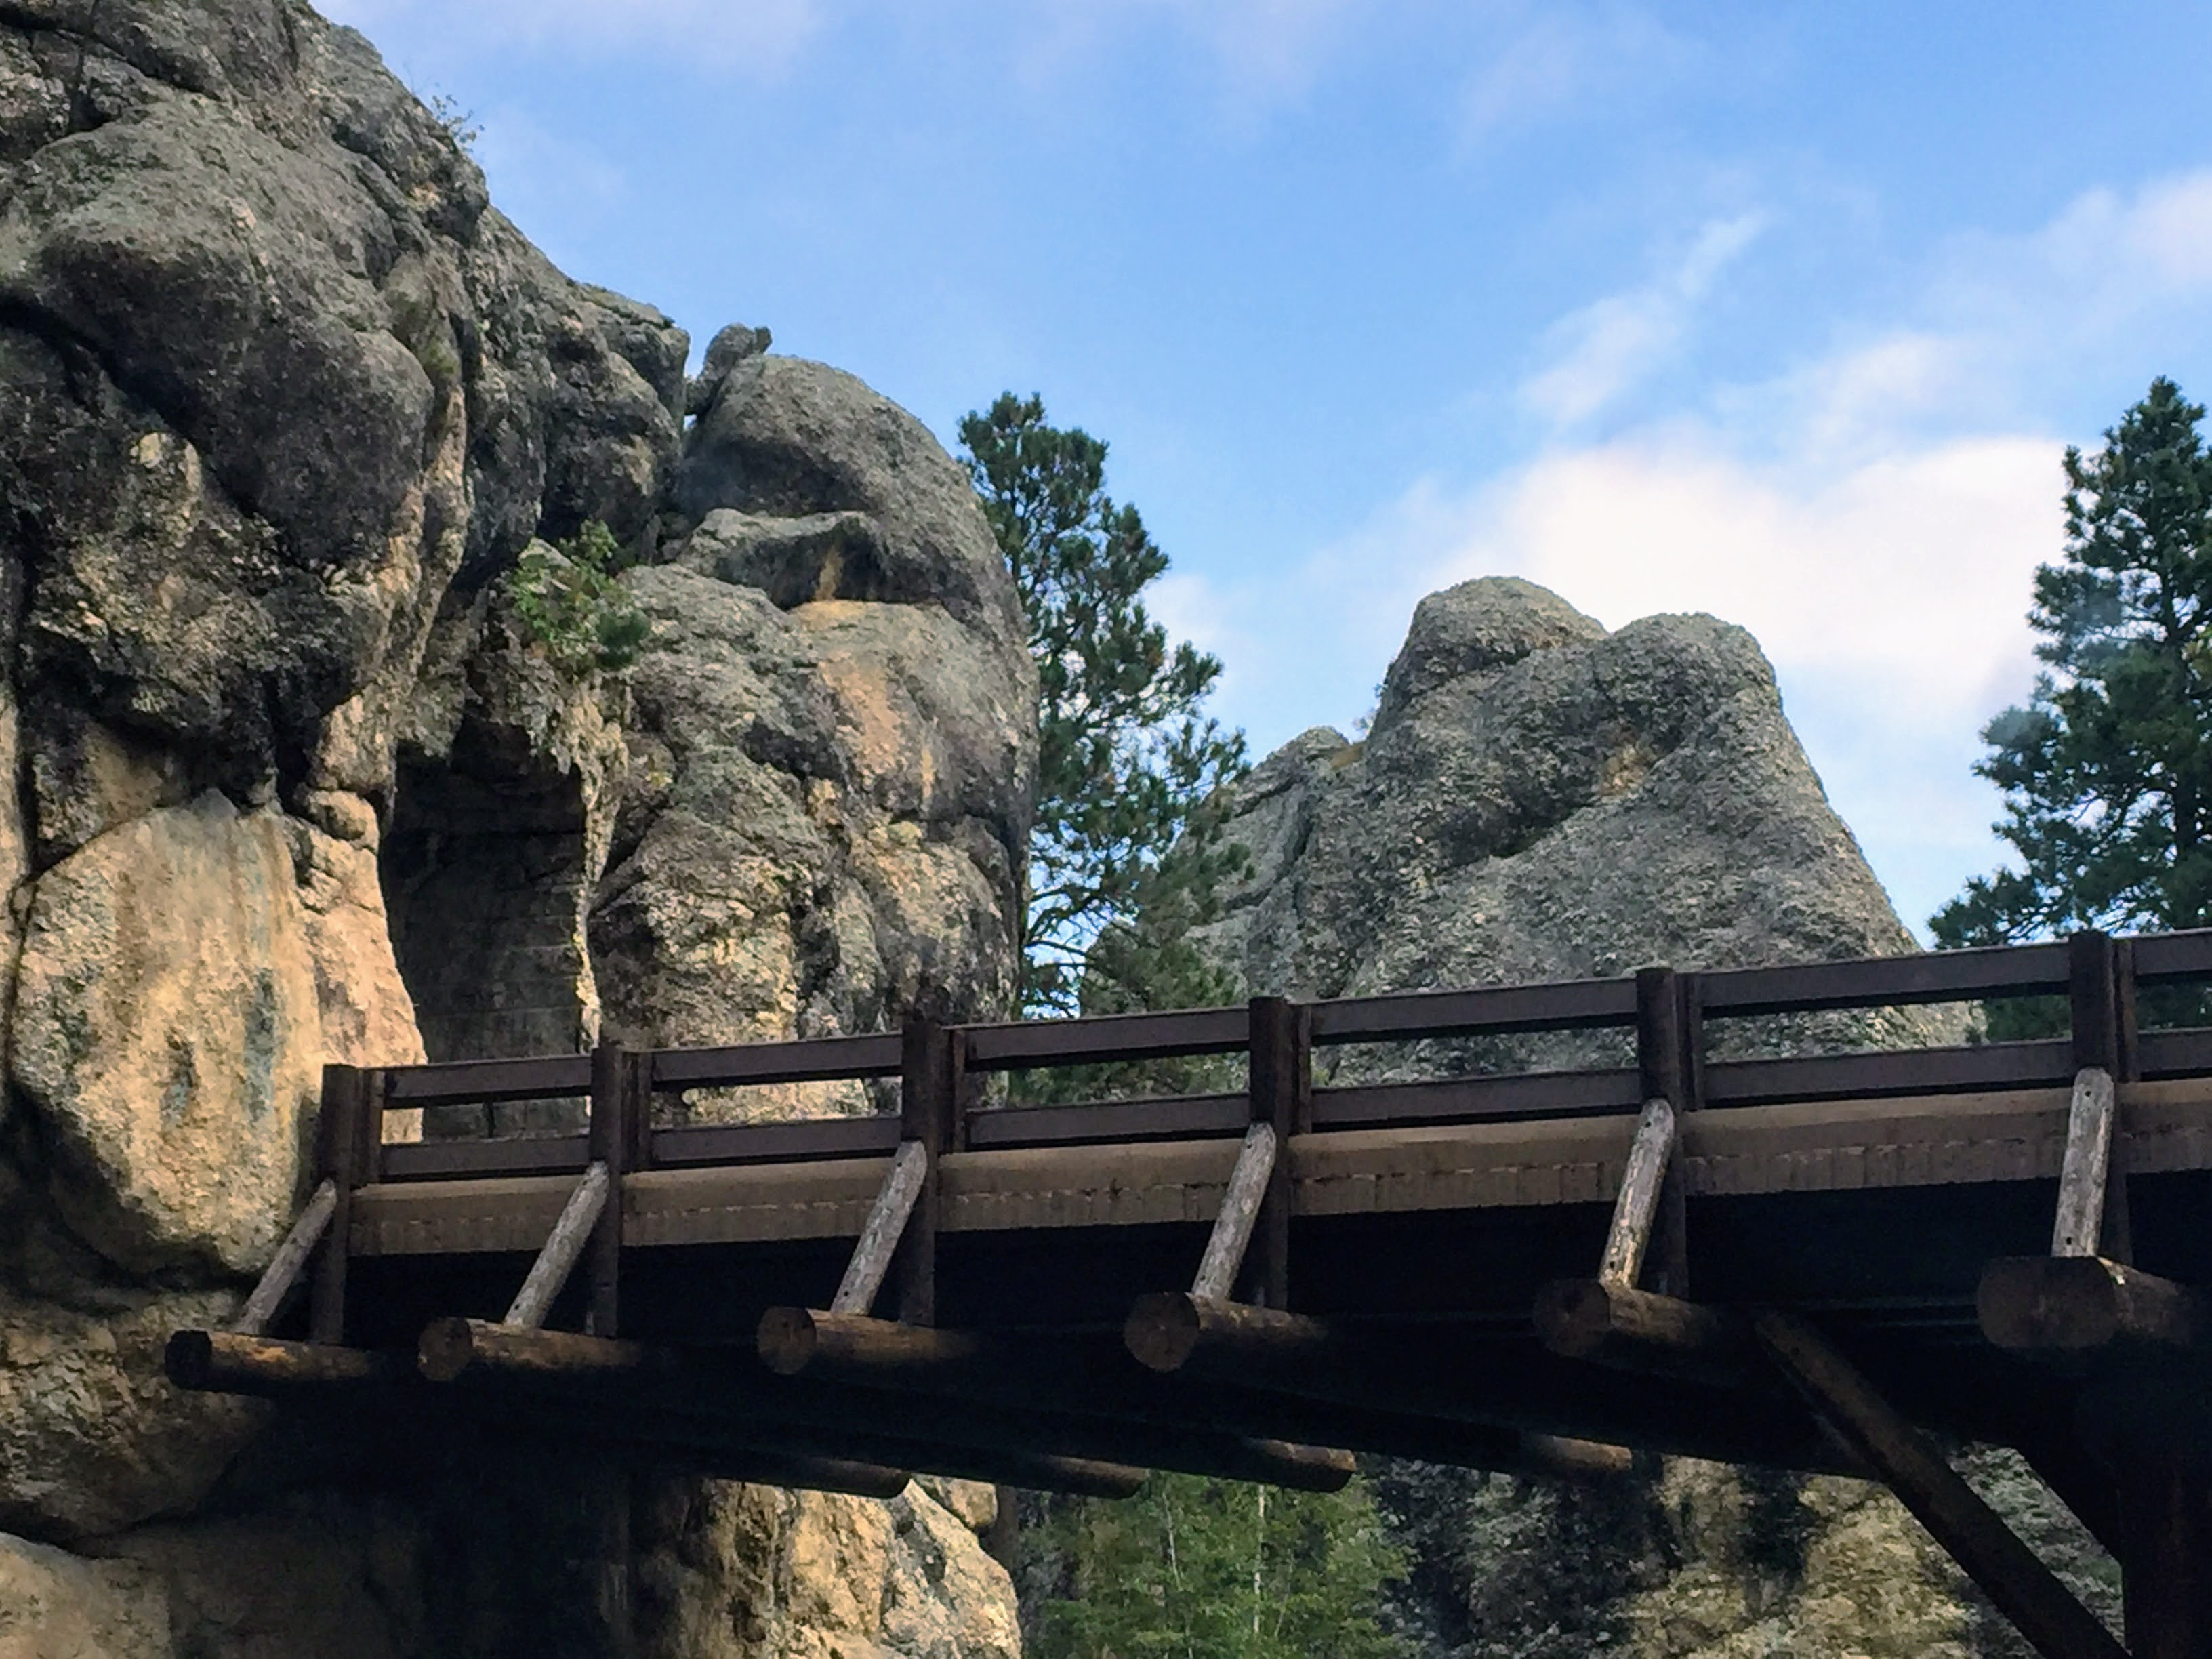 2017-09-17 Black Hills 11 Pigtail Tunnel 02